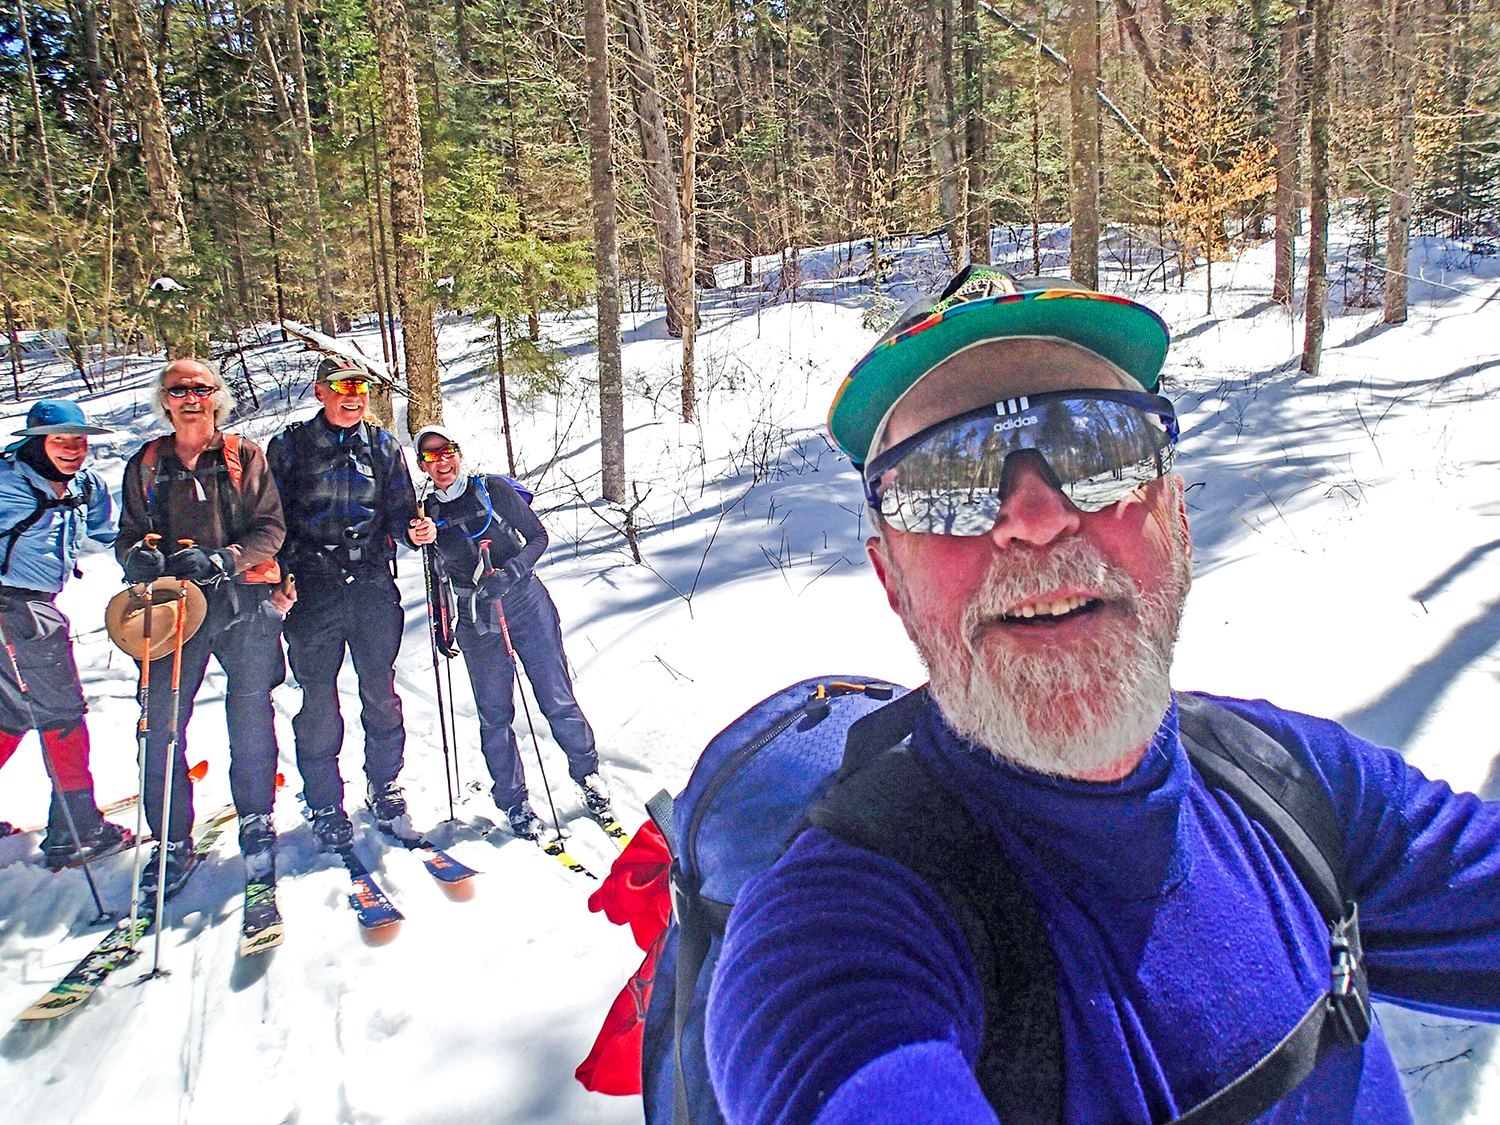 One of the author's many backcountry adventures with friends.